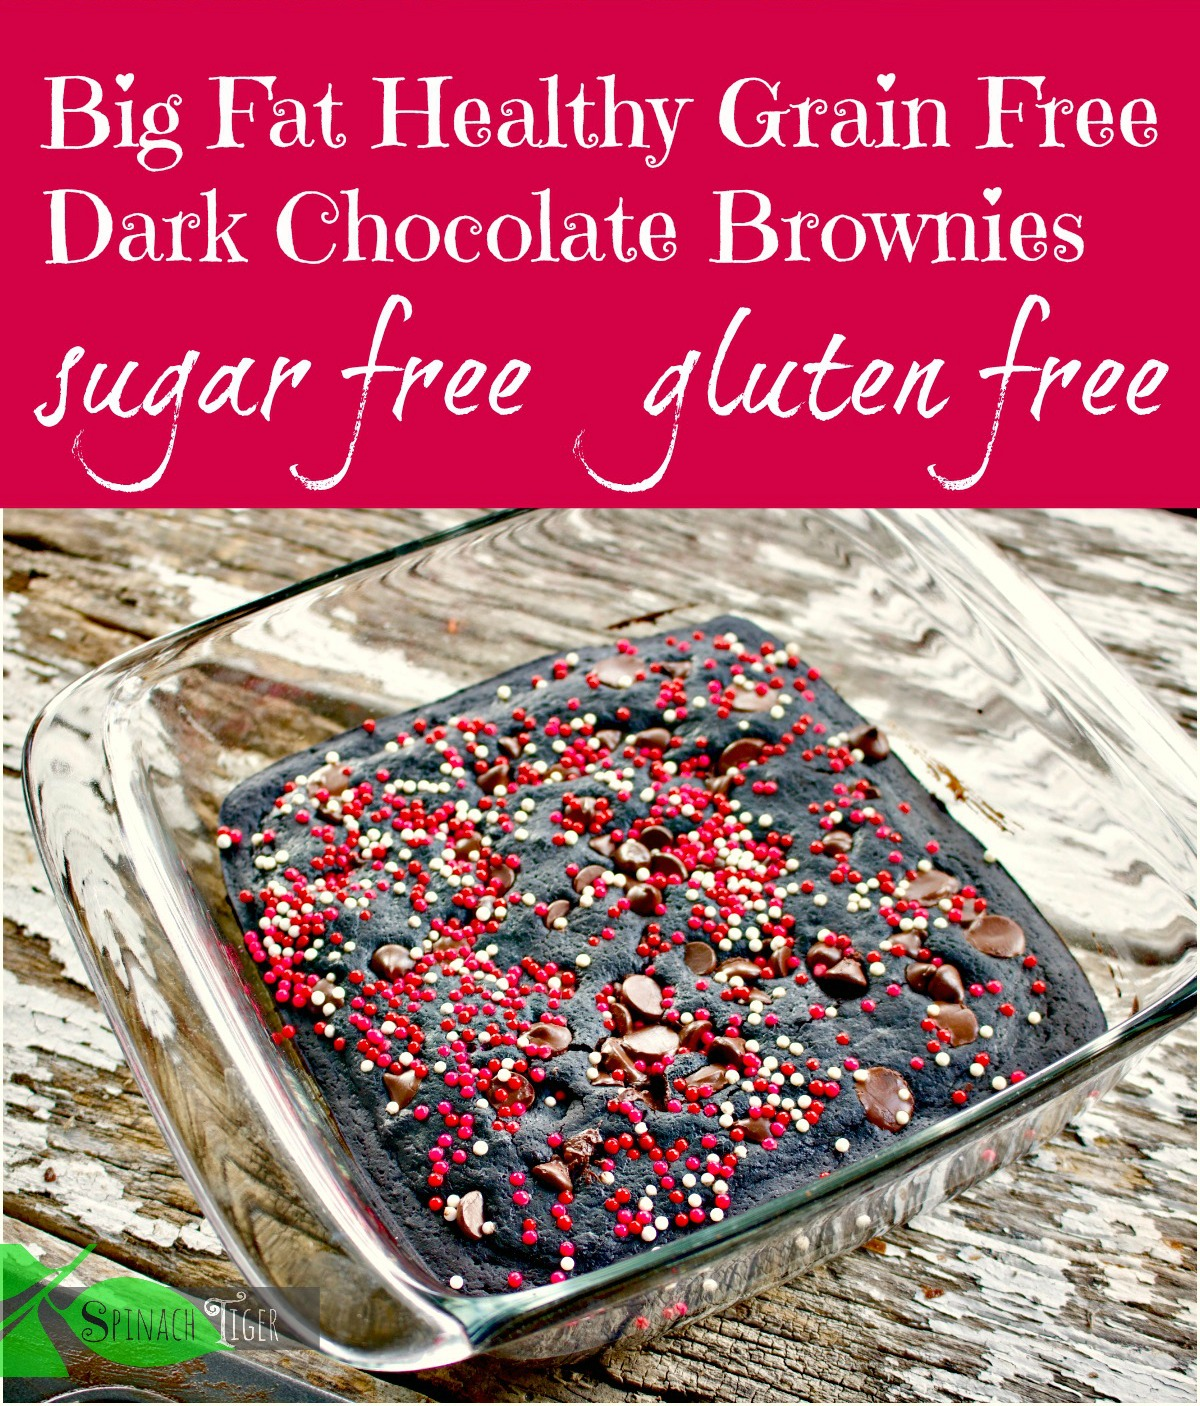 Grain Free Diabetic Brownies from Spinach TIger